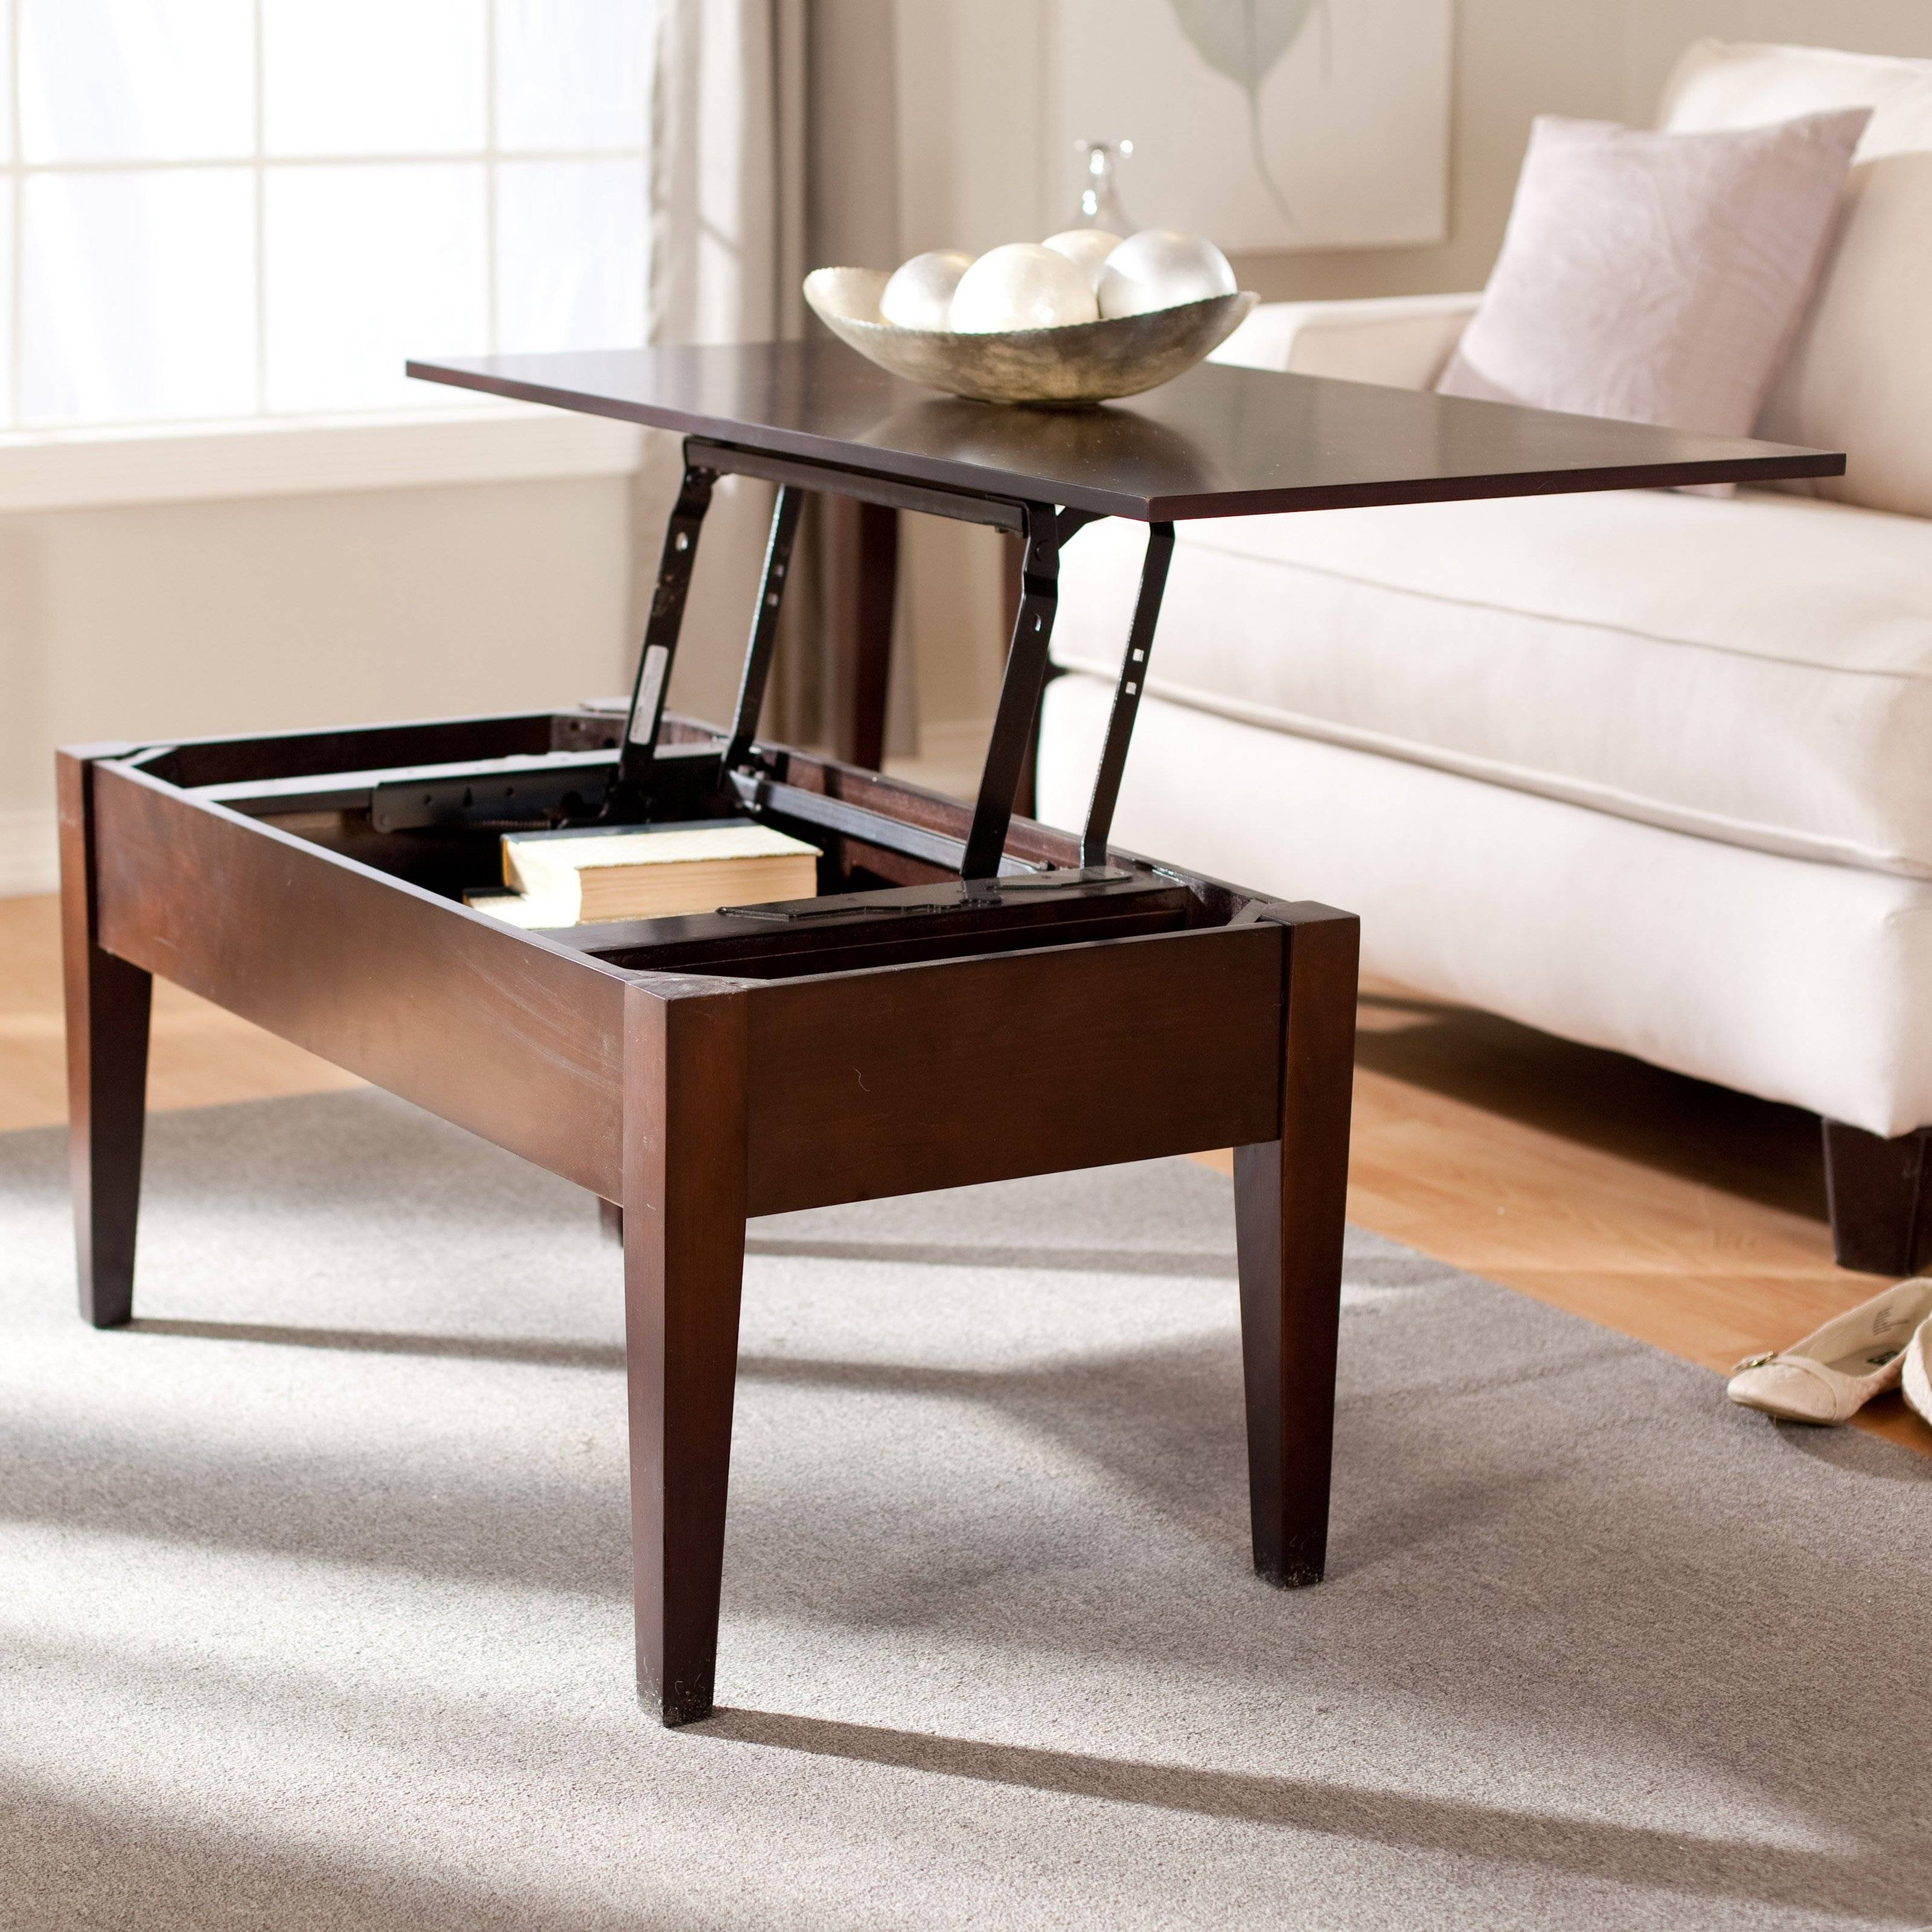 Turner Lift Top Coffee Table - Espresso | Hayneedle throughout Lifting Coffee Tables (Image 29 of 30)